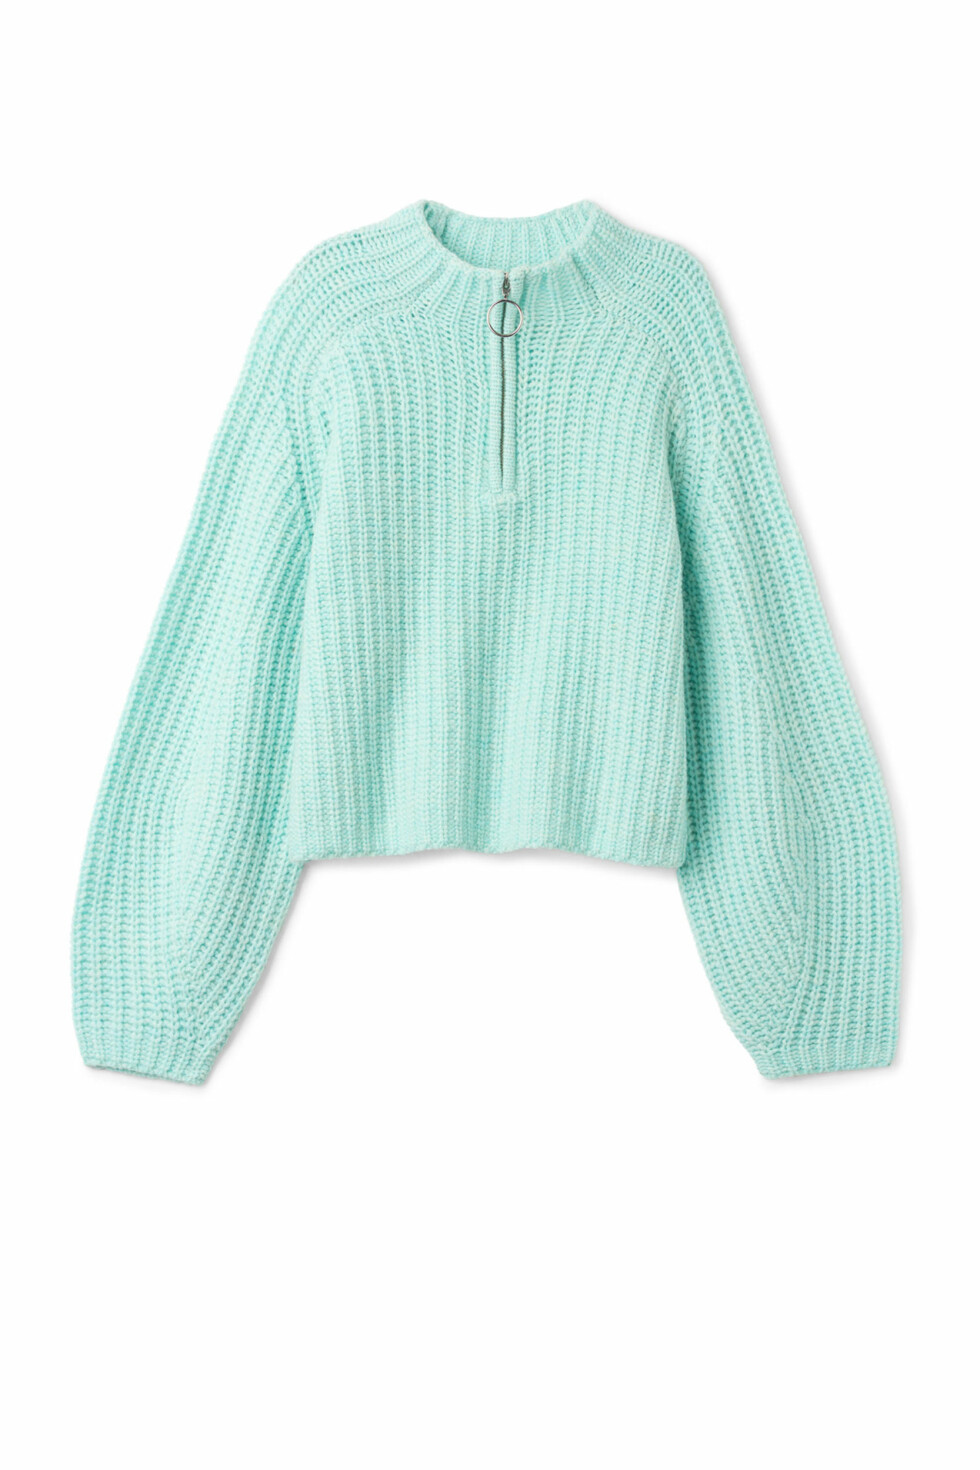 Genser fra Weekday |600,-| https://www.weekday.com/en_sek/women/get-the-latest/new-arrivals/_jcr_content/subdepartmentPar/productlisting_86054396.products/product.aurora-sweater-light-turquoise.0587795001.html